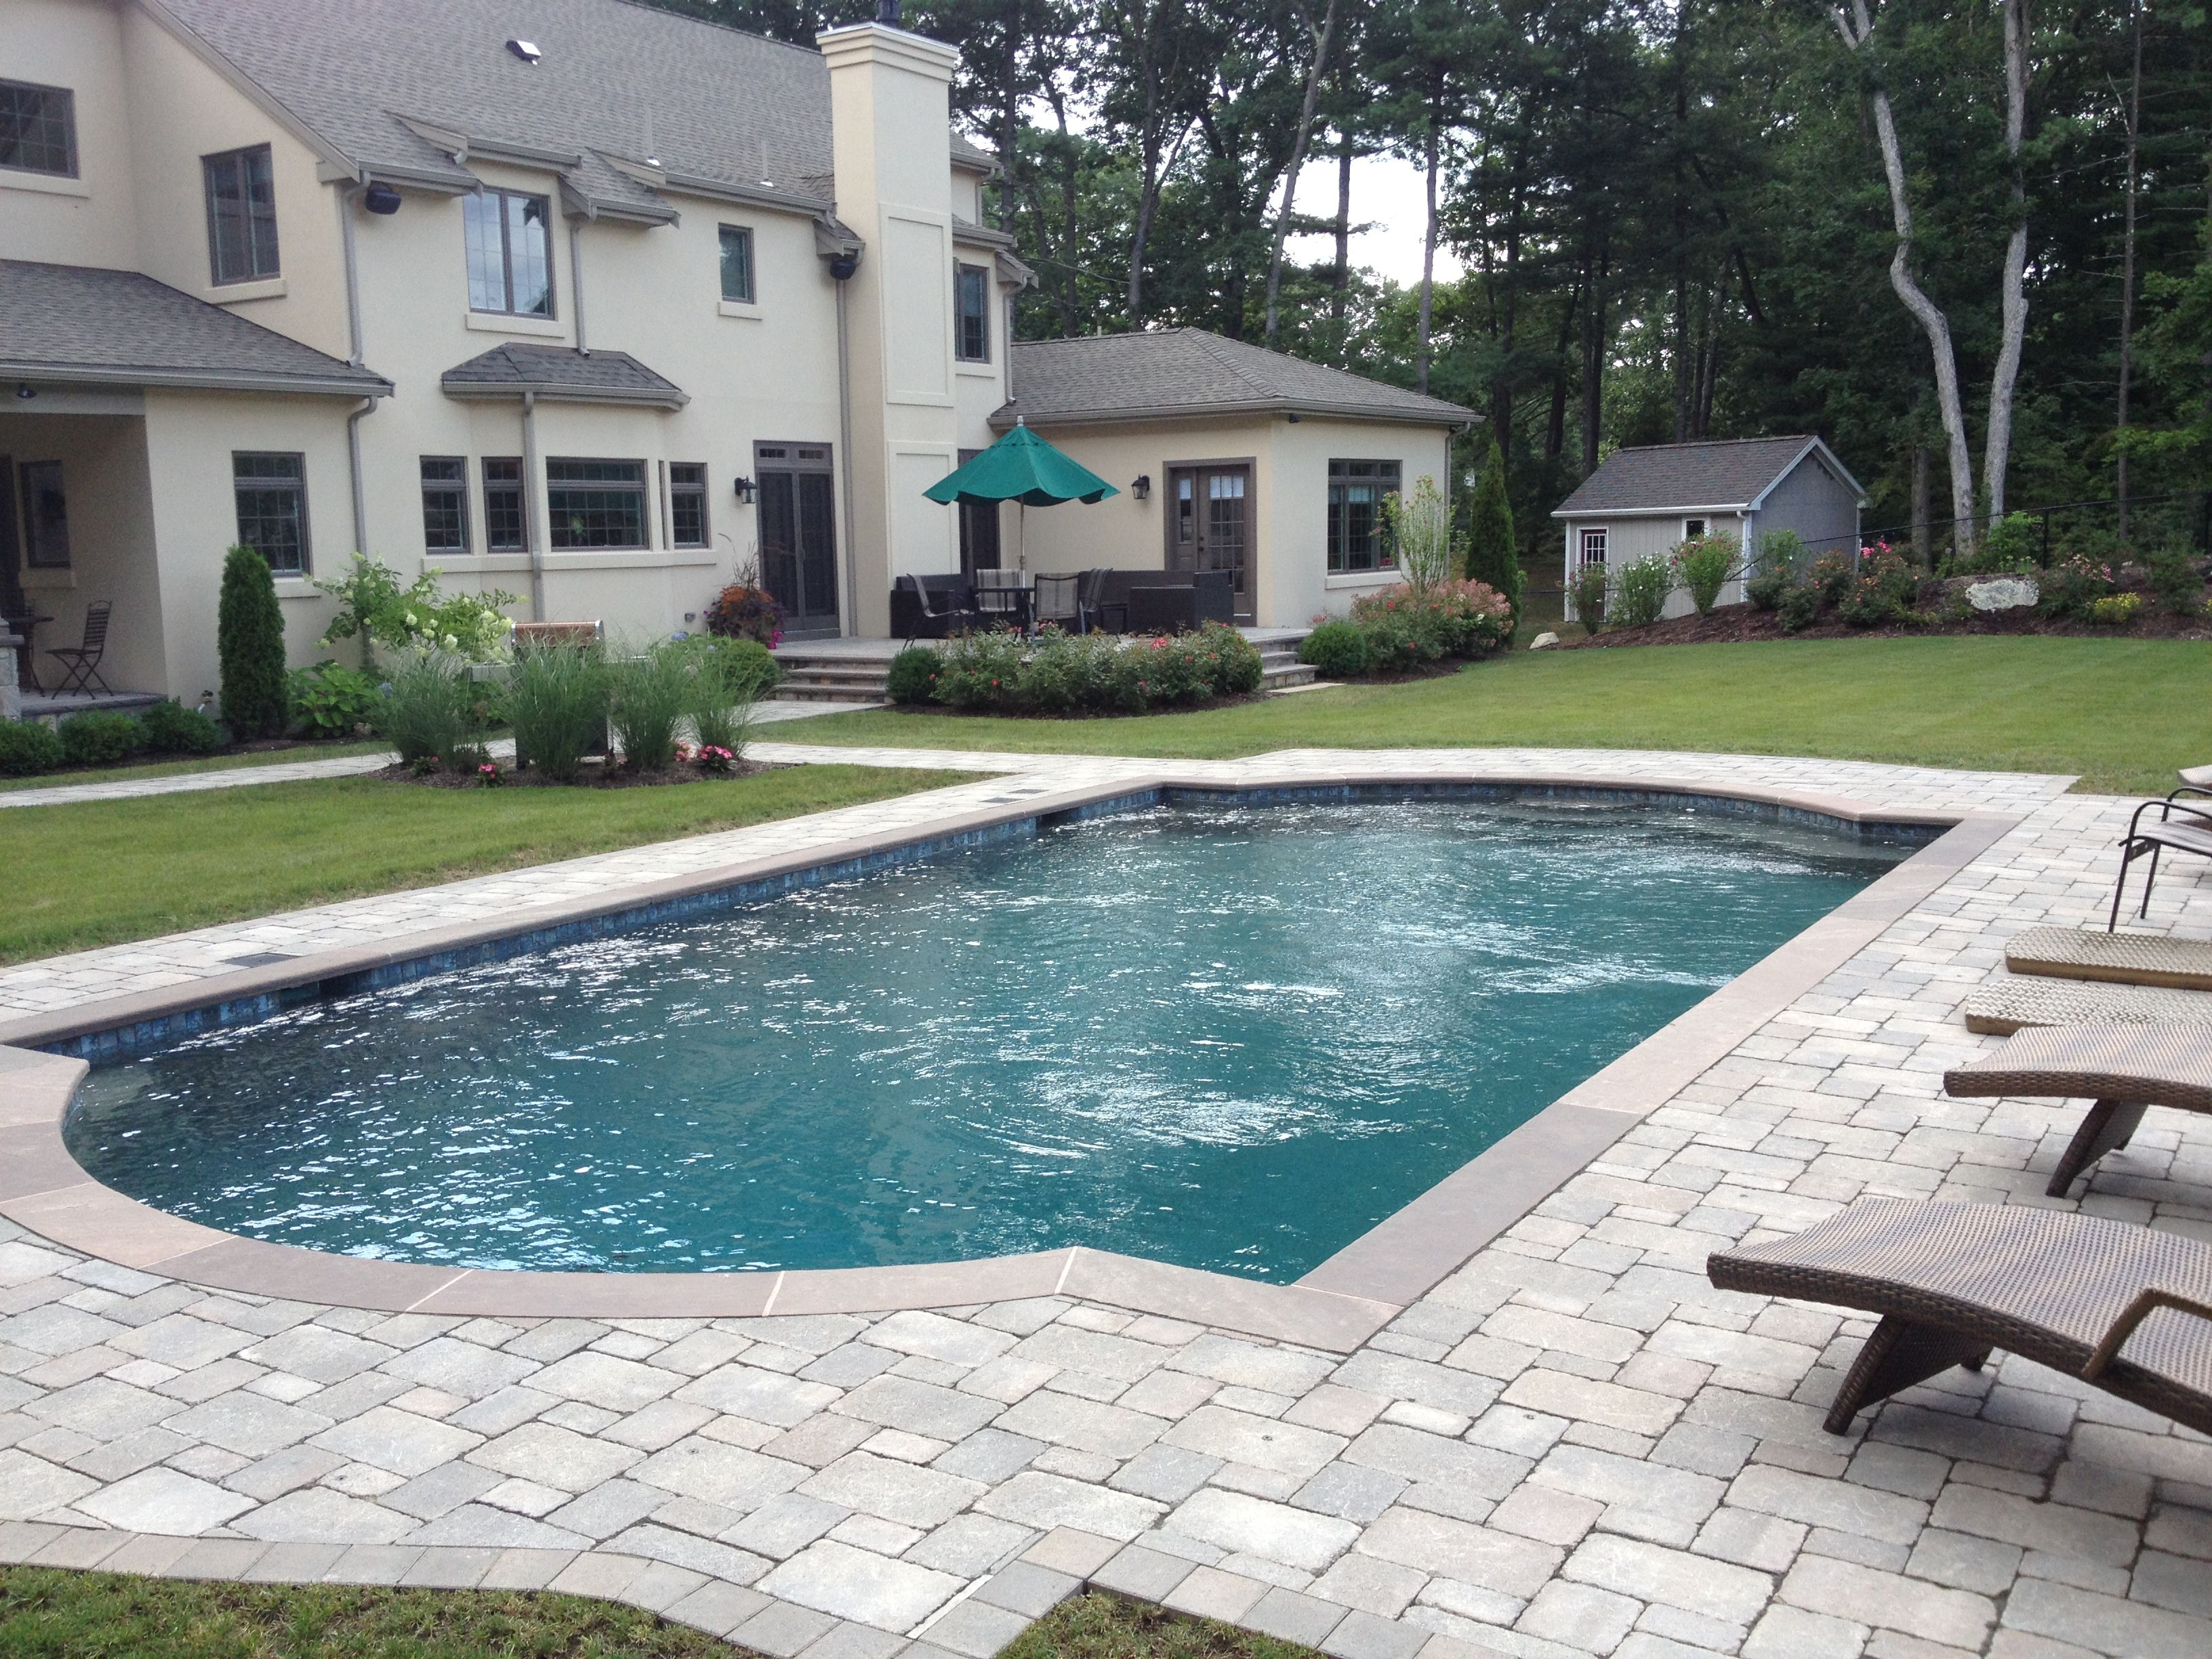 Pool Paver Ideas design ideas for a traditional backyard landscape in chicago with brick pavers Swimming Pools